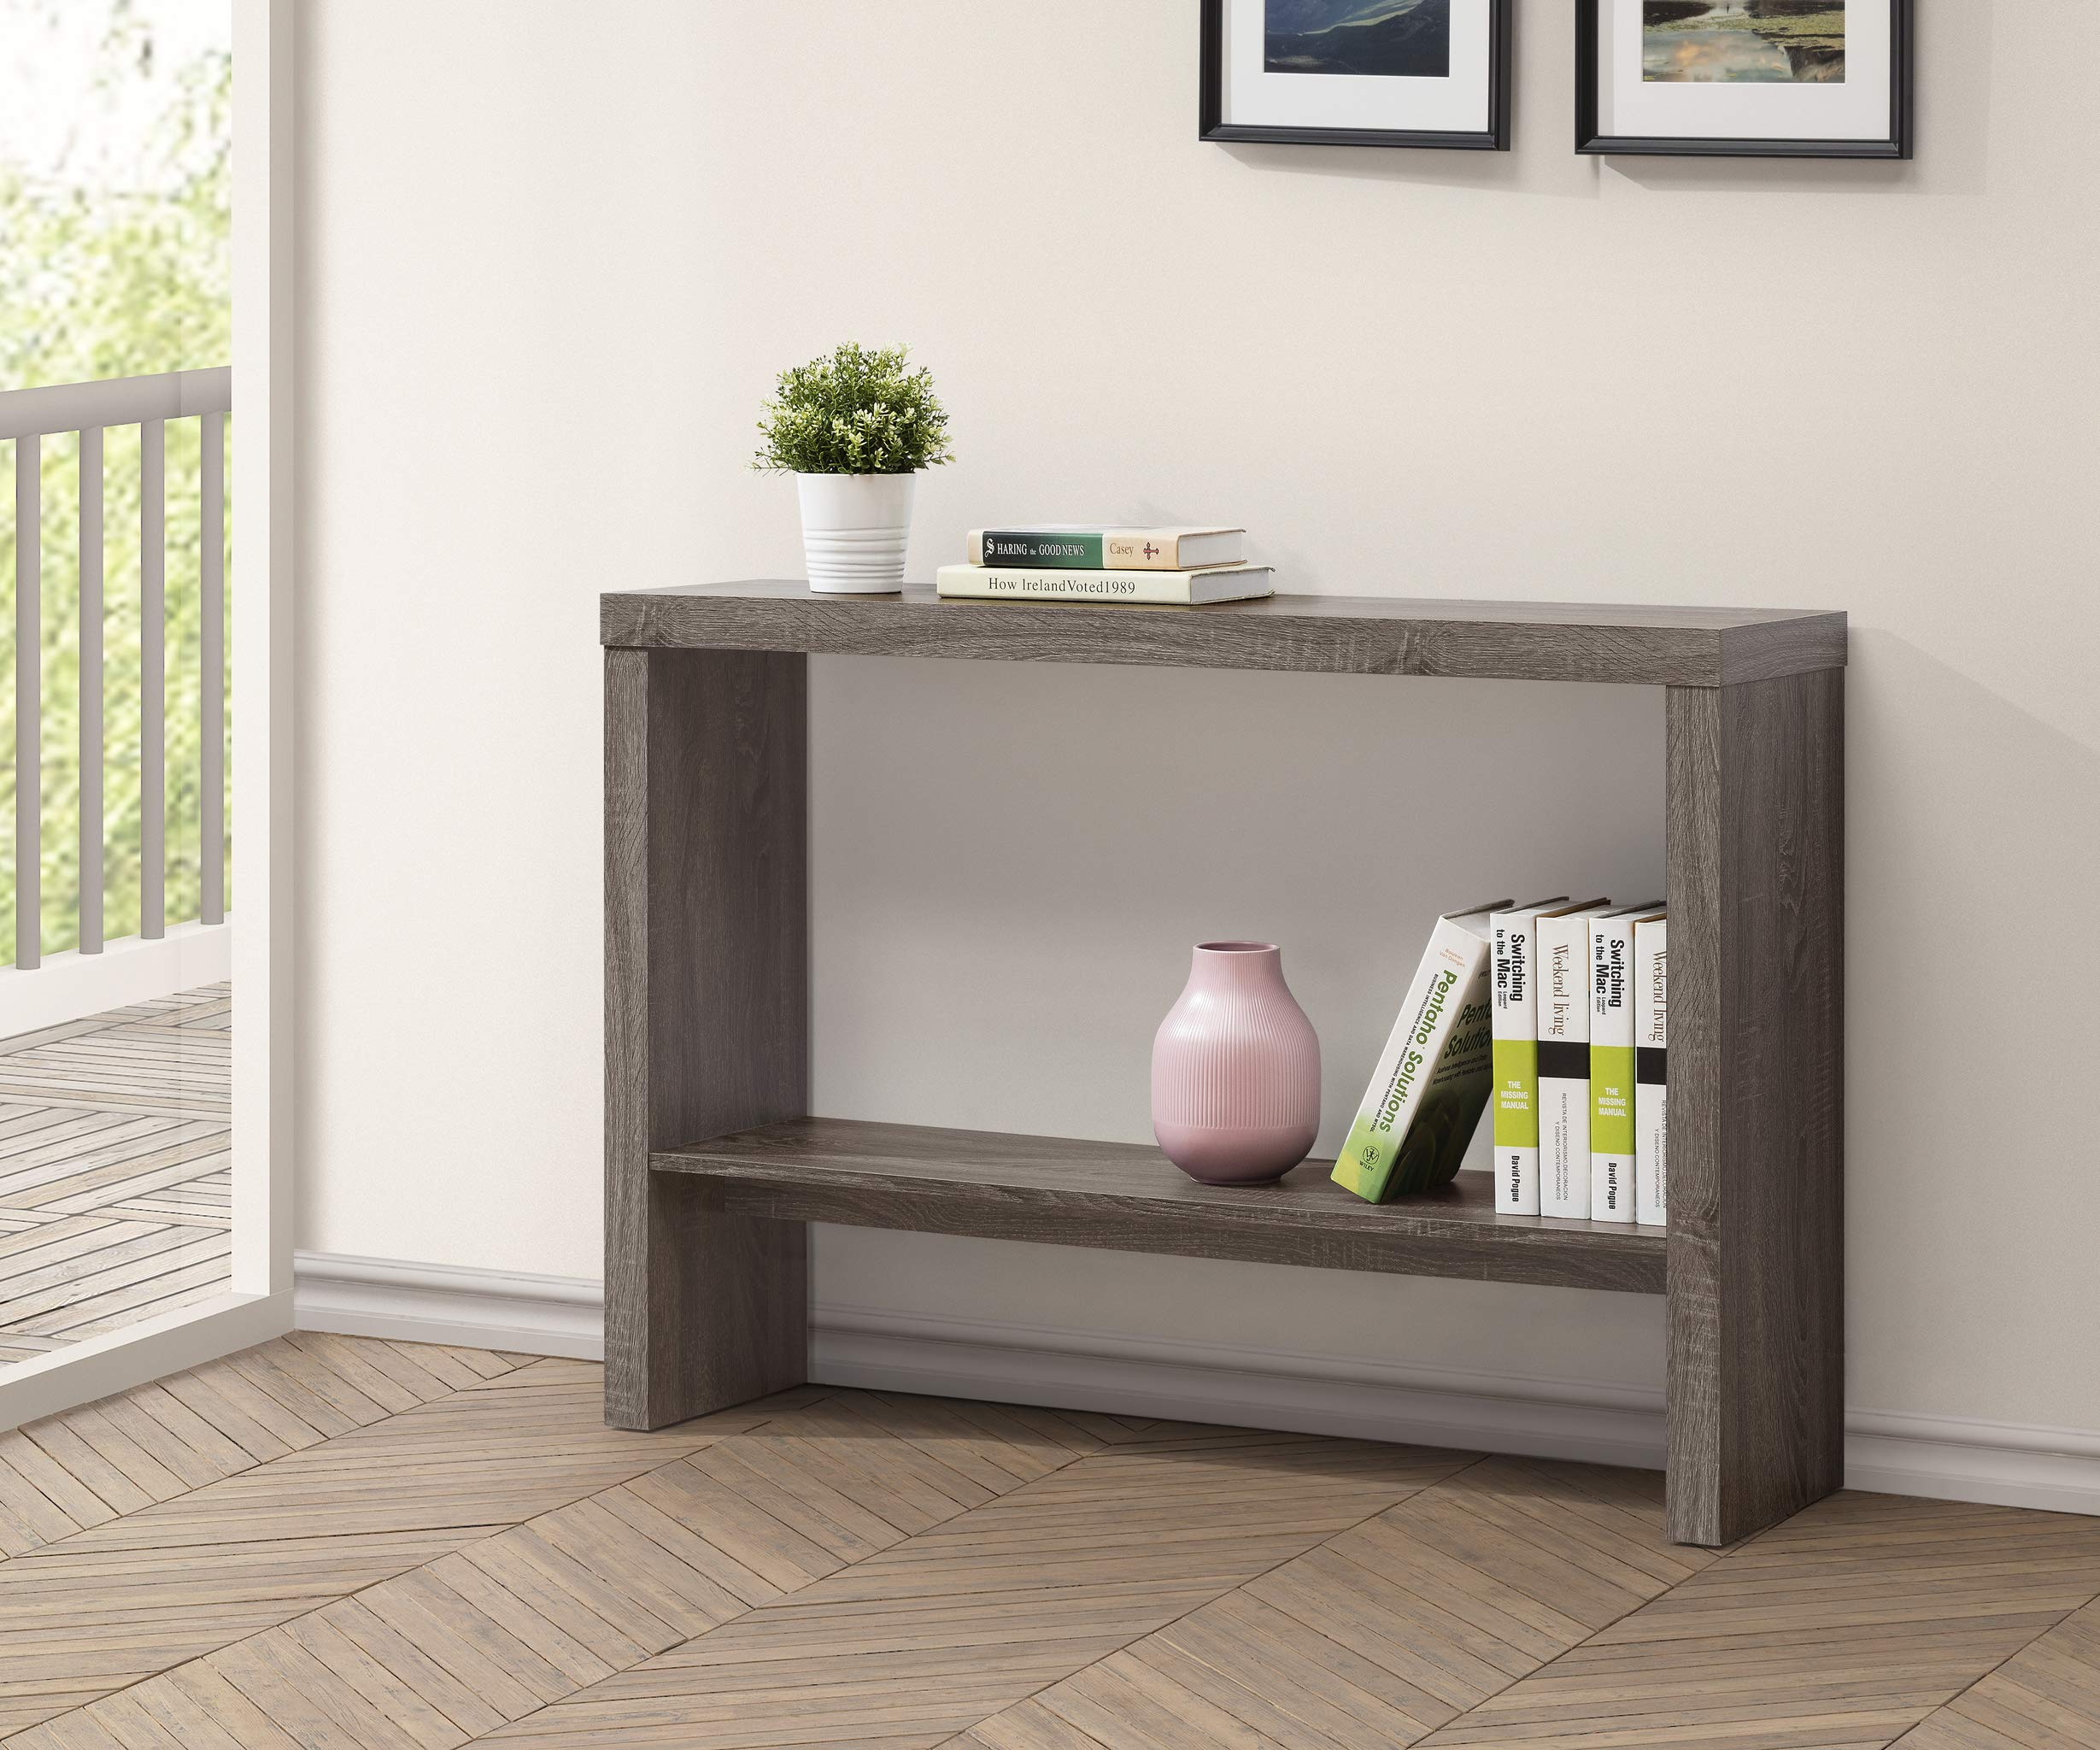 Weathered Grey 2-Tier Entryway Console Sofa Table by eHomeProducts